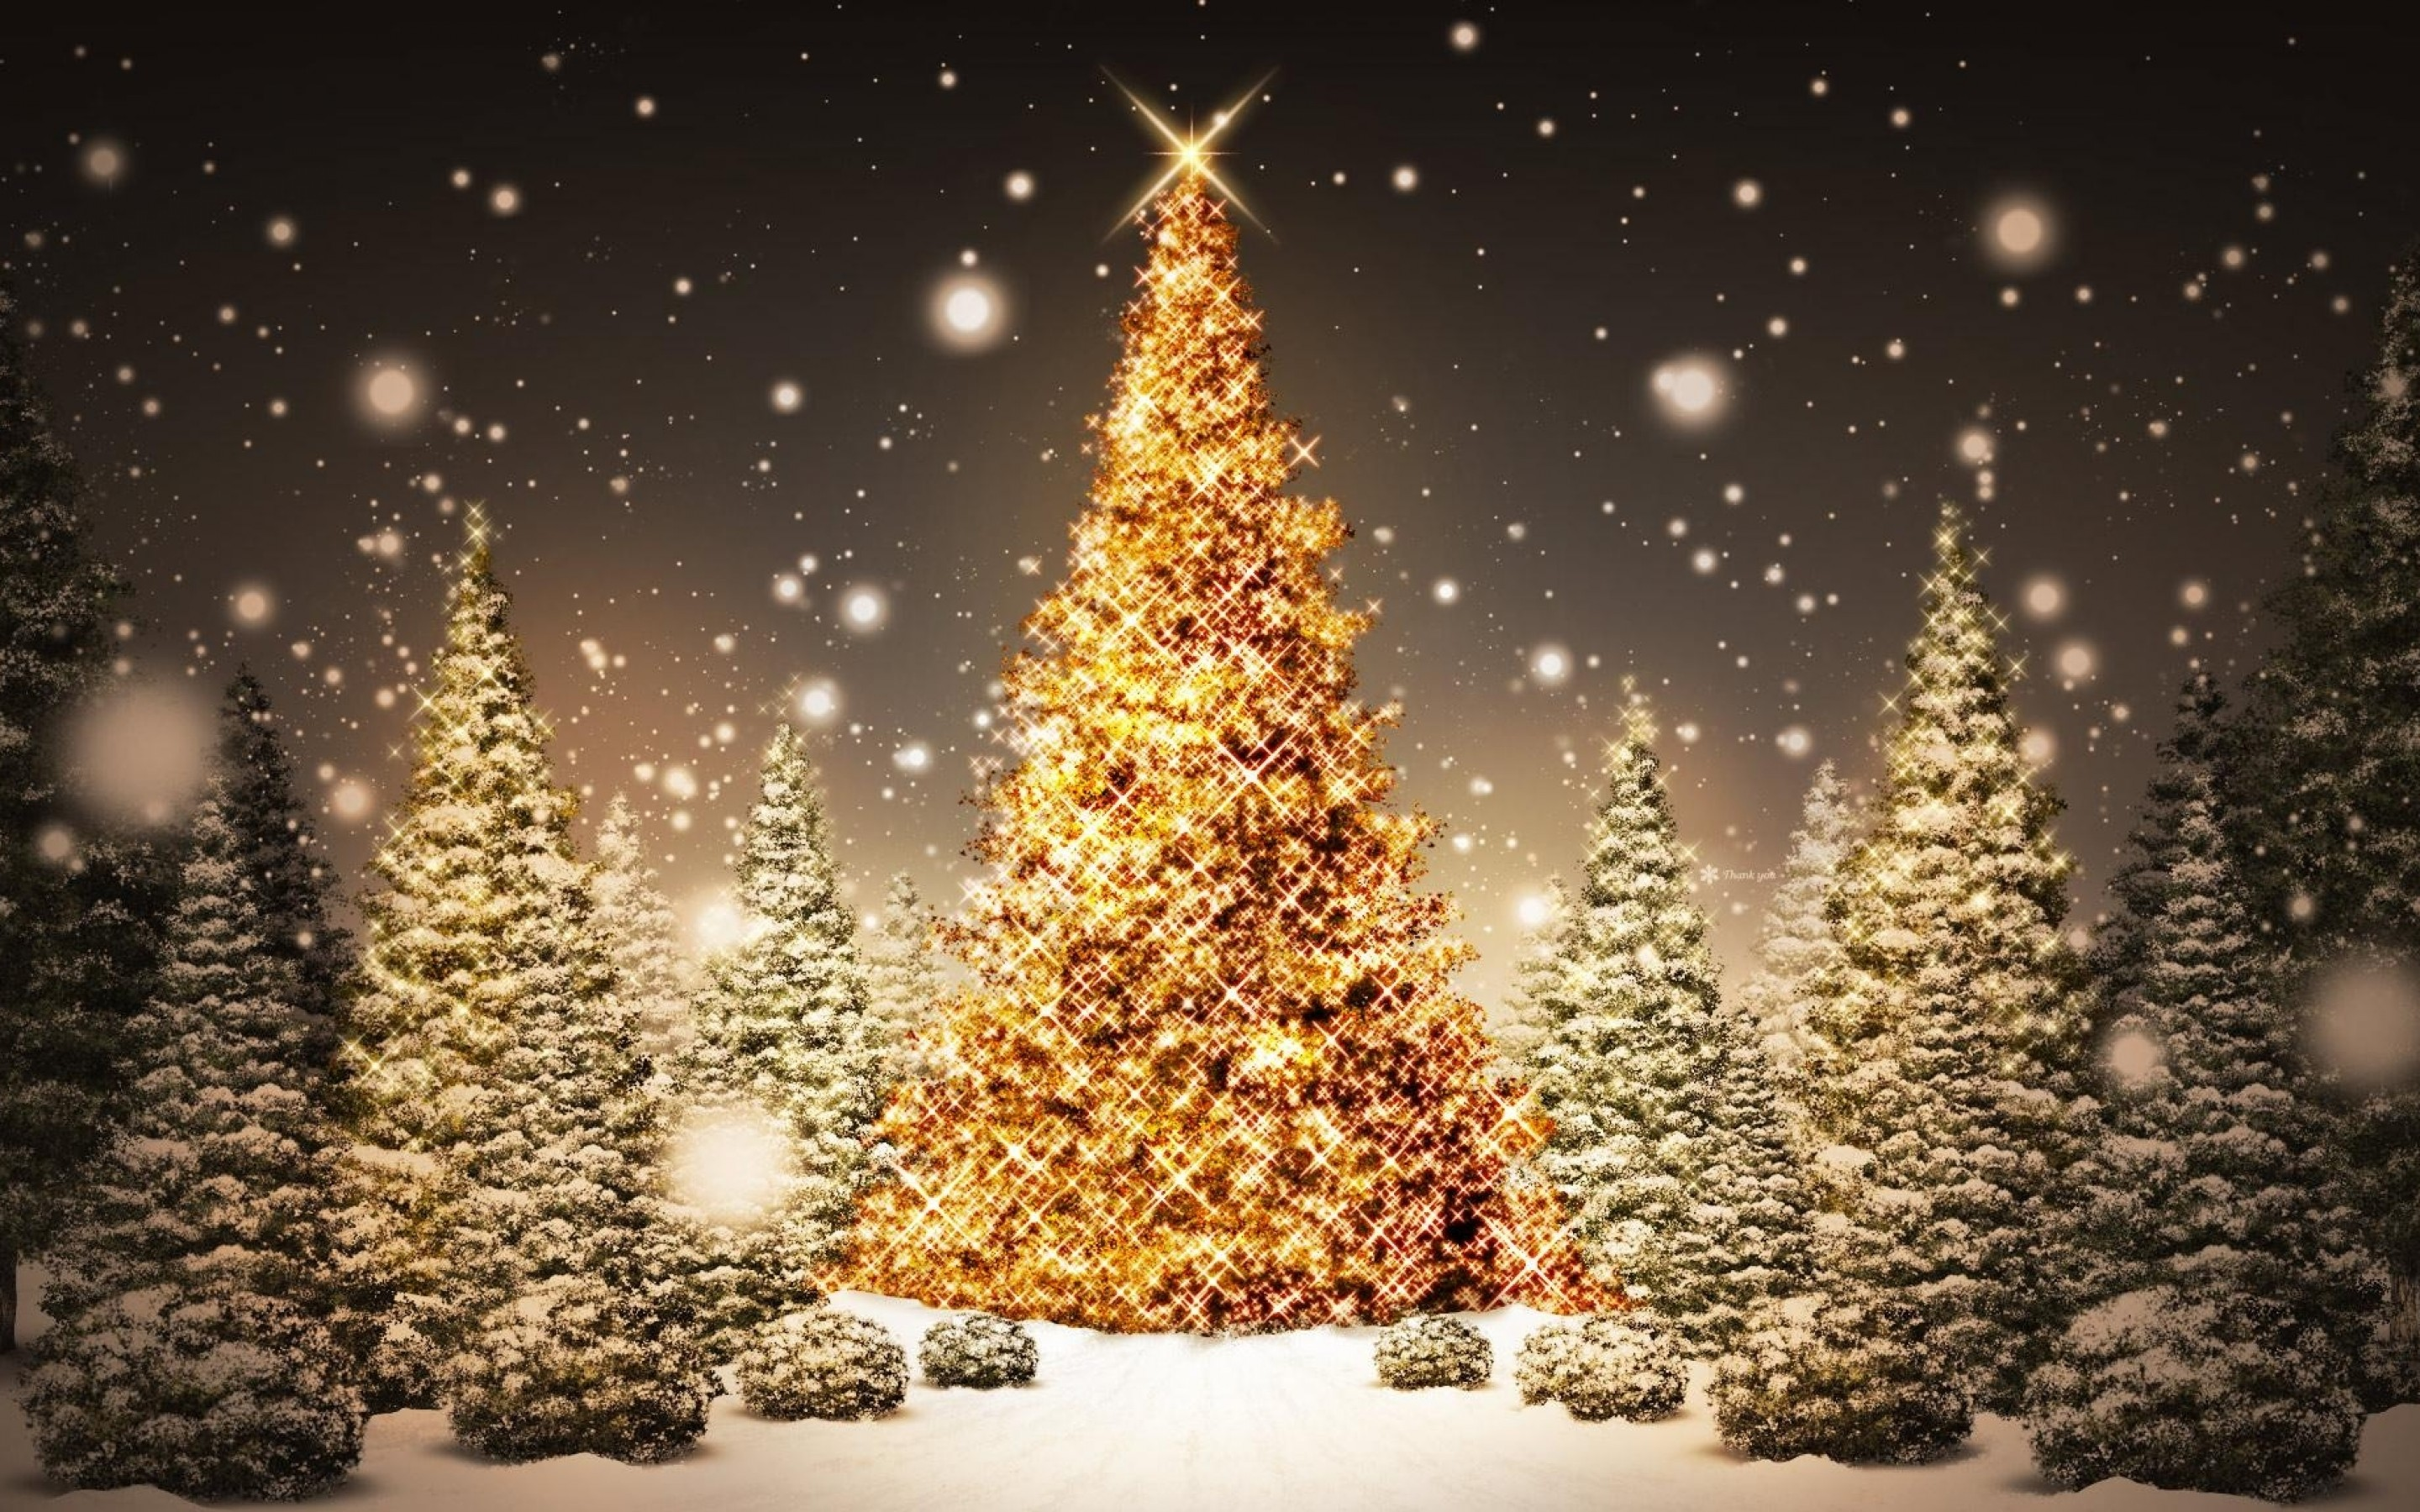 Download Free Christmas Wallpapers And Screensavers